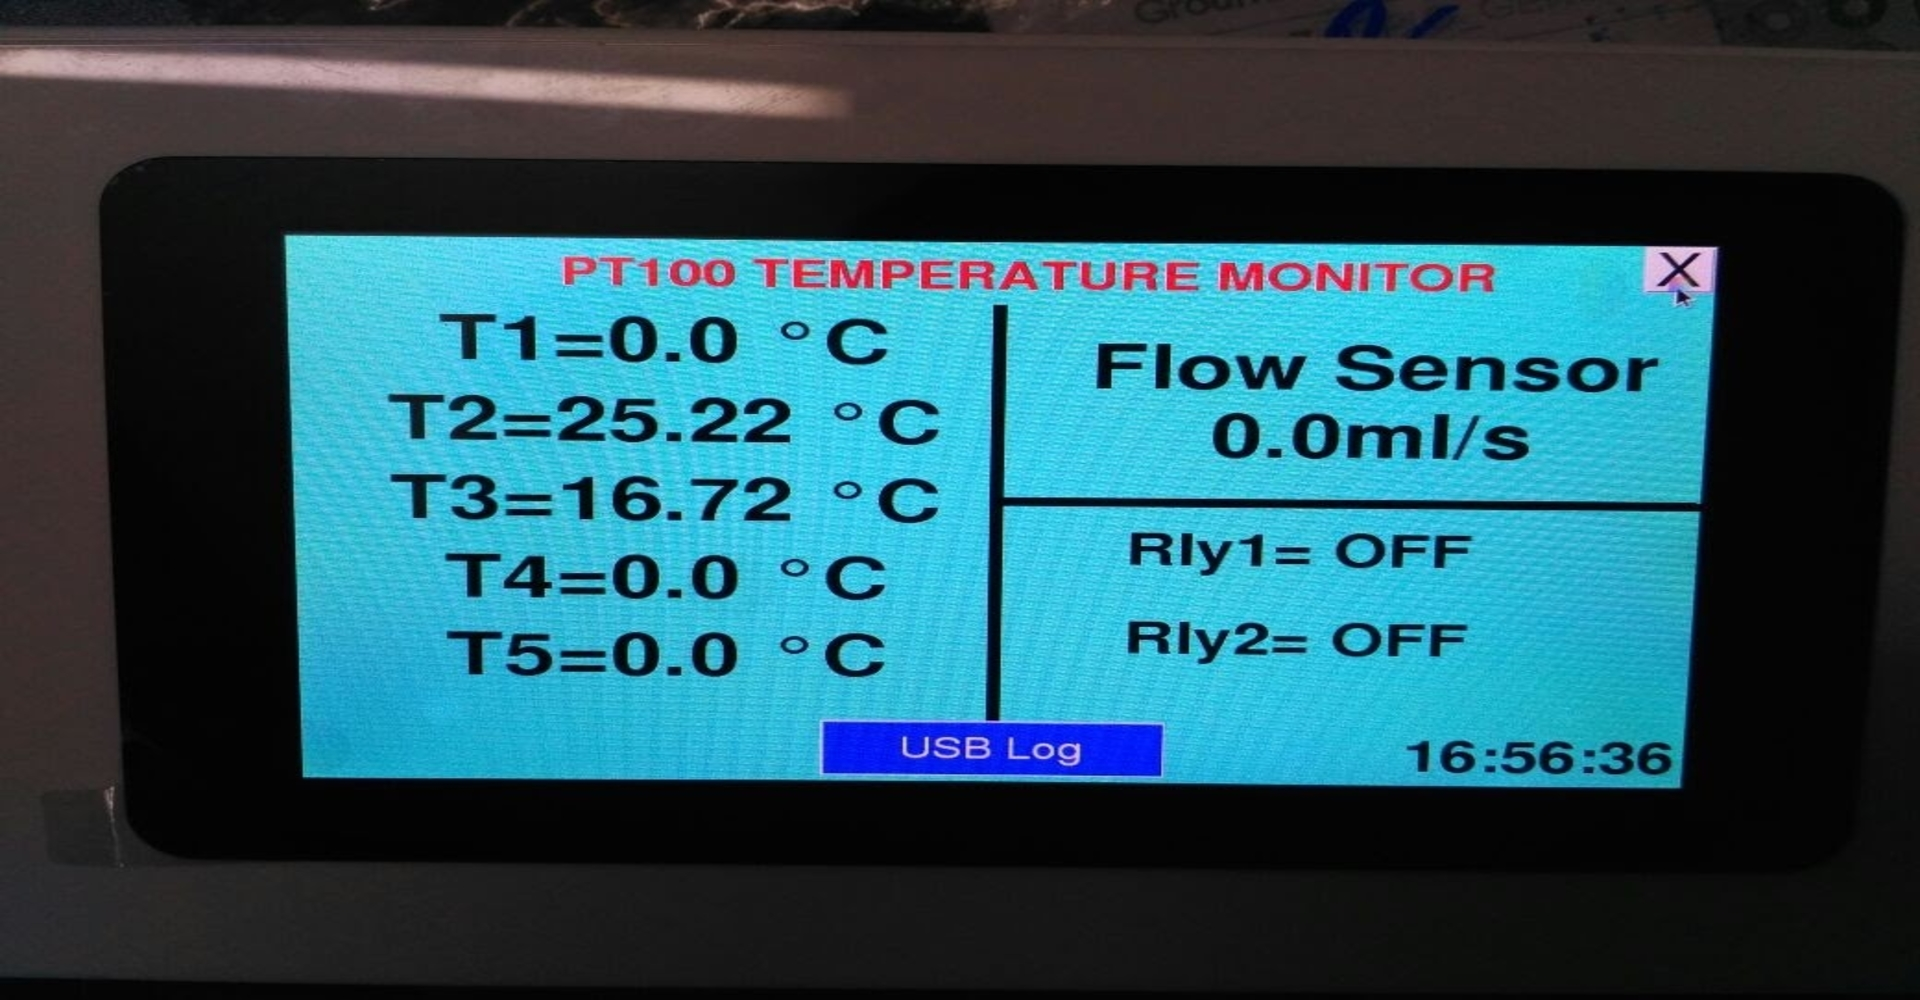 Industrial Temperature monitor